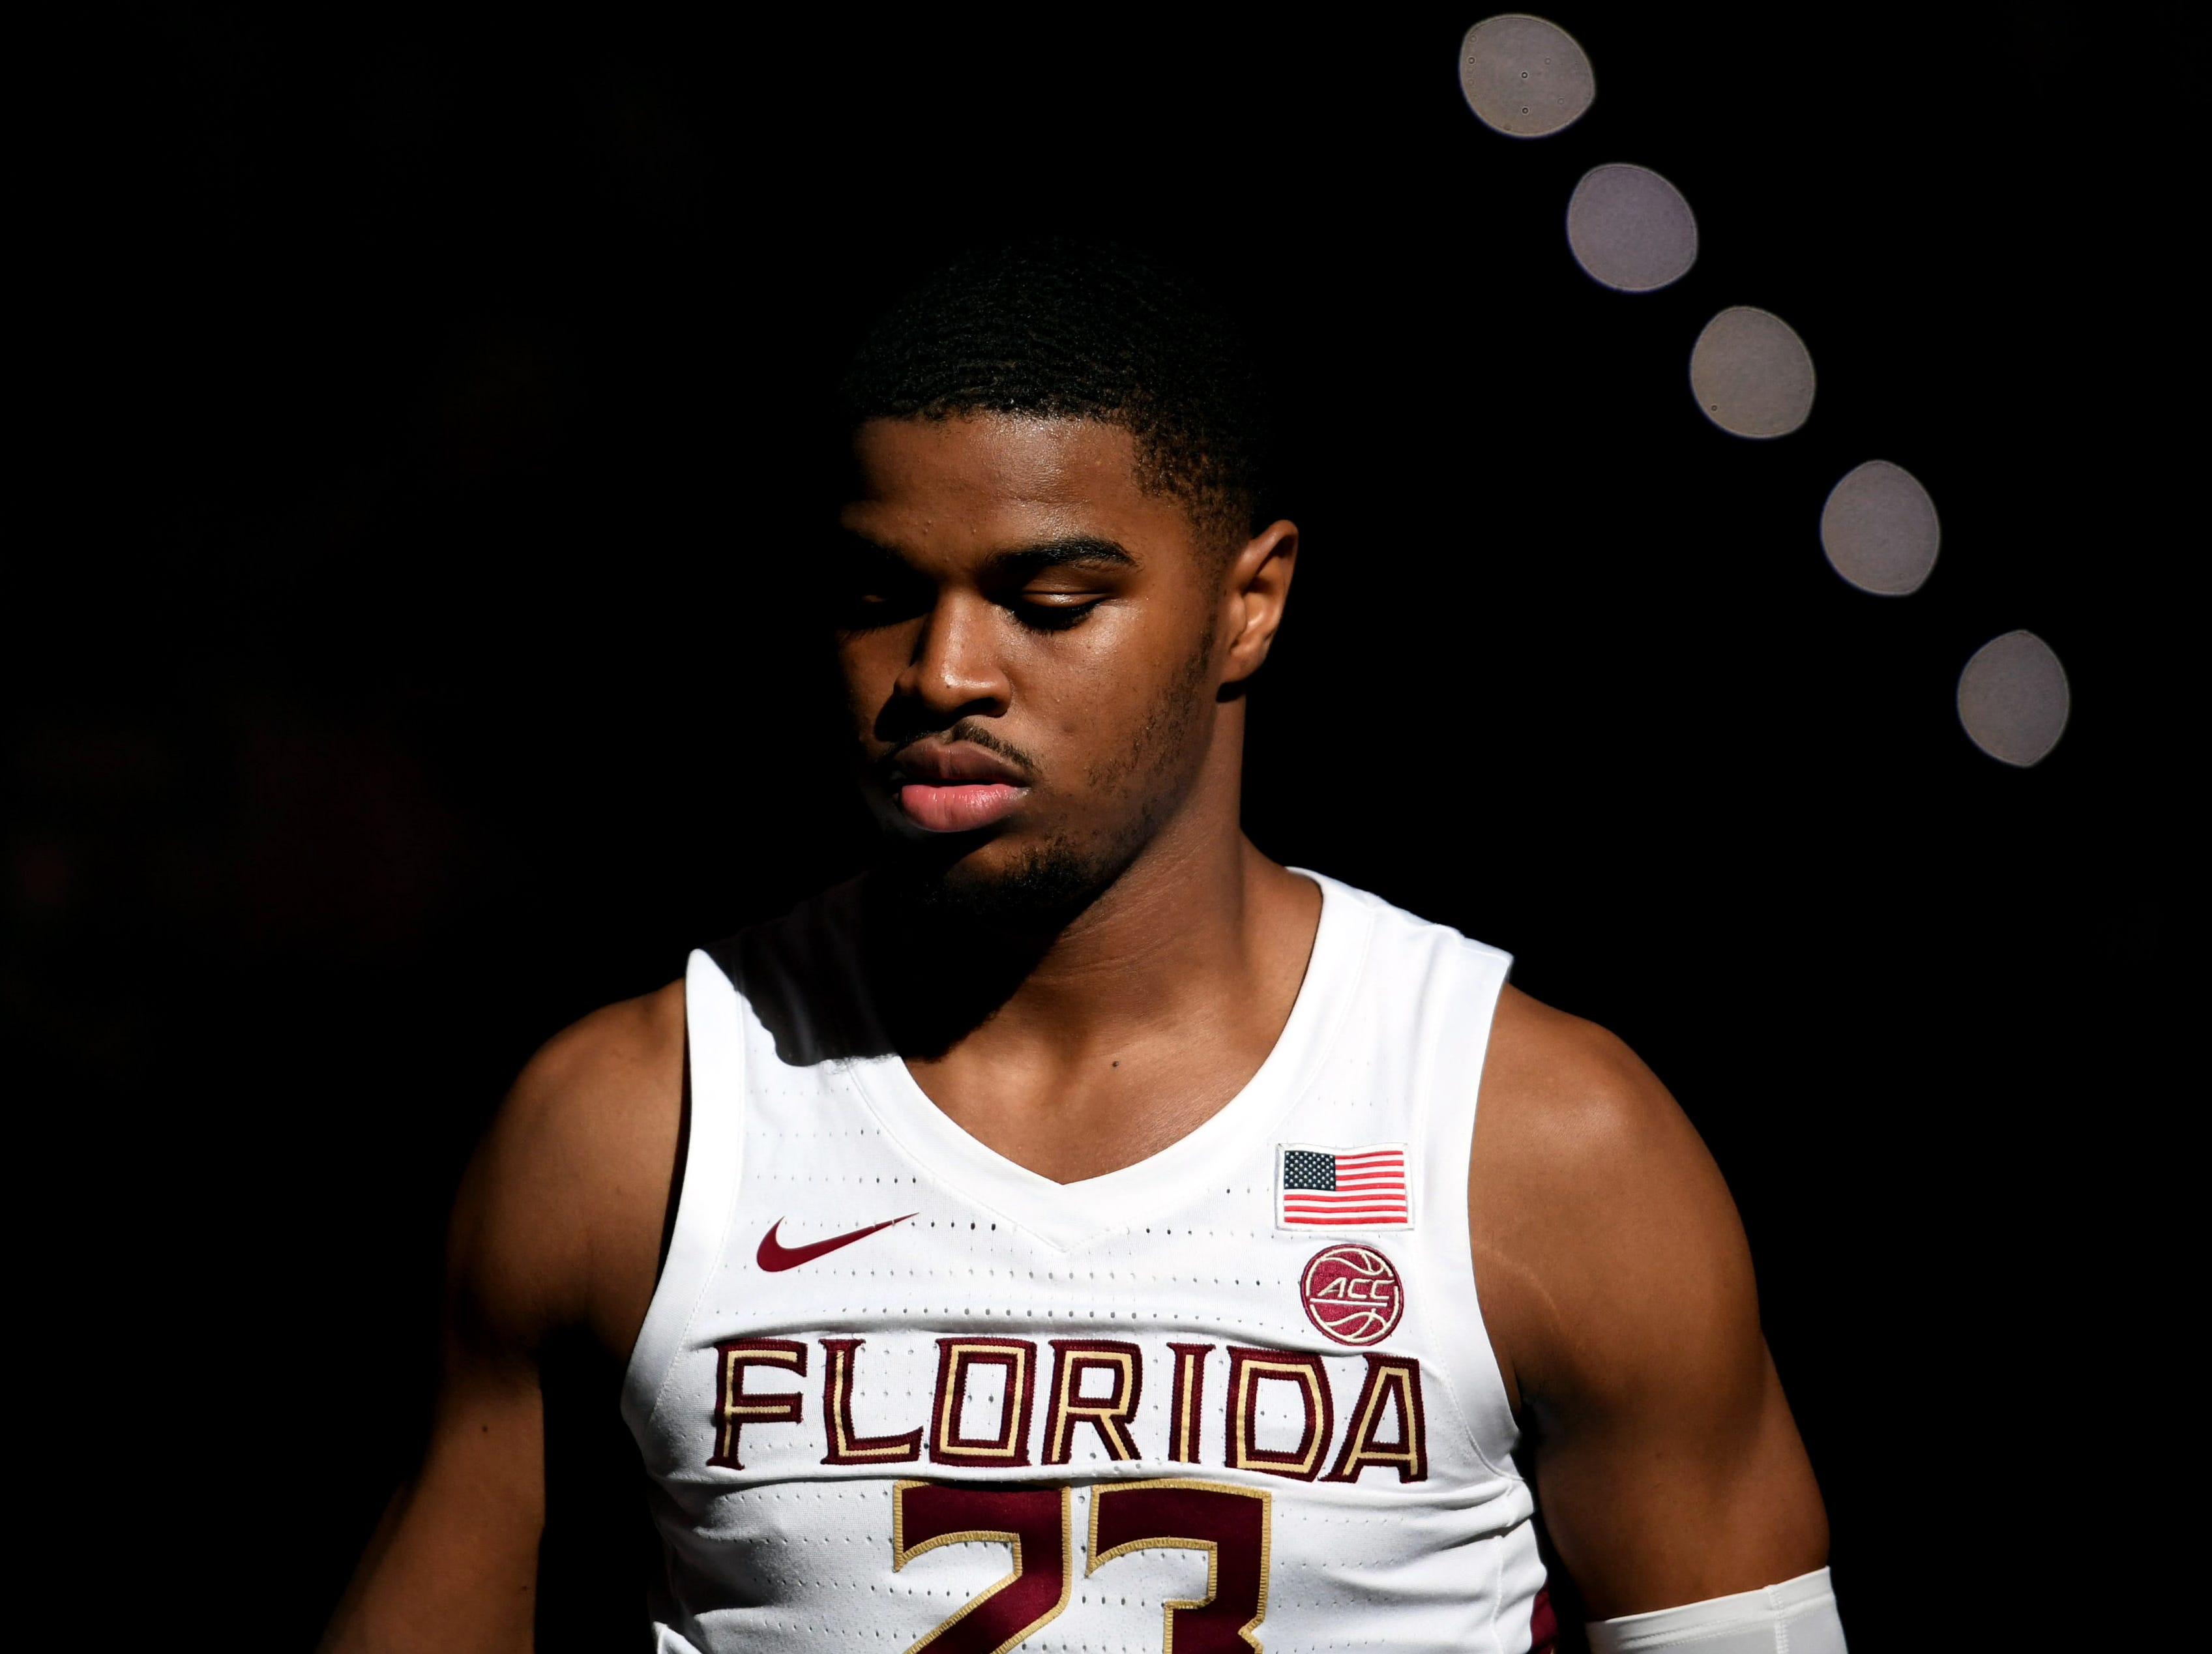 Feb 9, 2019; Tallahassee, FL, USA; Florida State Seminoles guard MJ Walker (23) is introduced before a game against the Louisville Cardinals at Donald L. Tucker Center. Mandatory Credit: Melina Myers-USA TODAY Sports